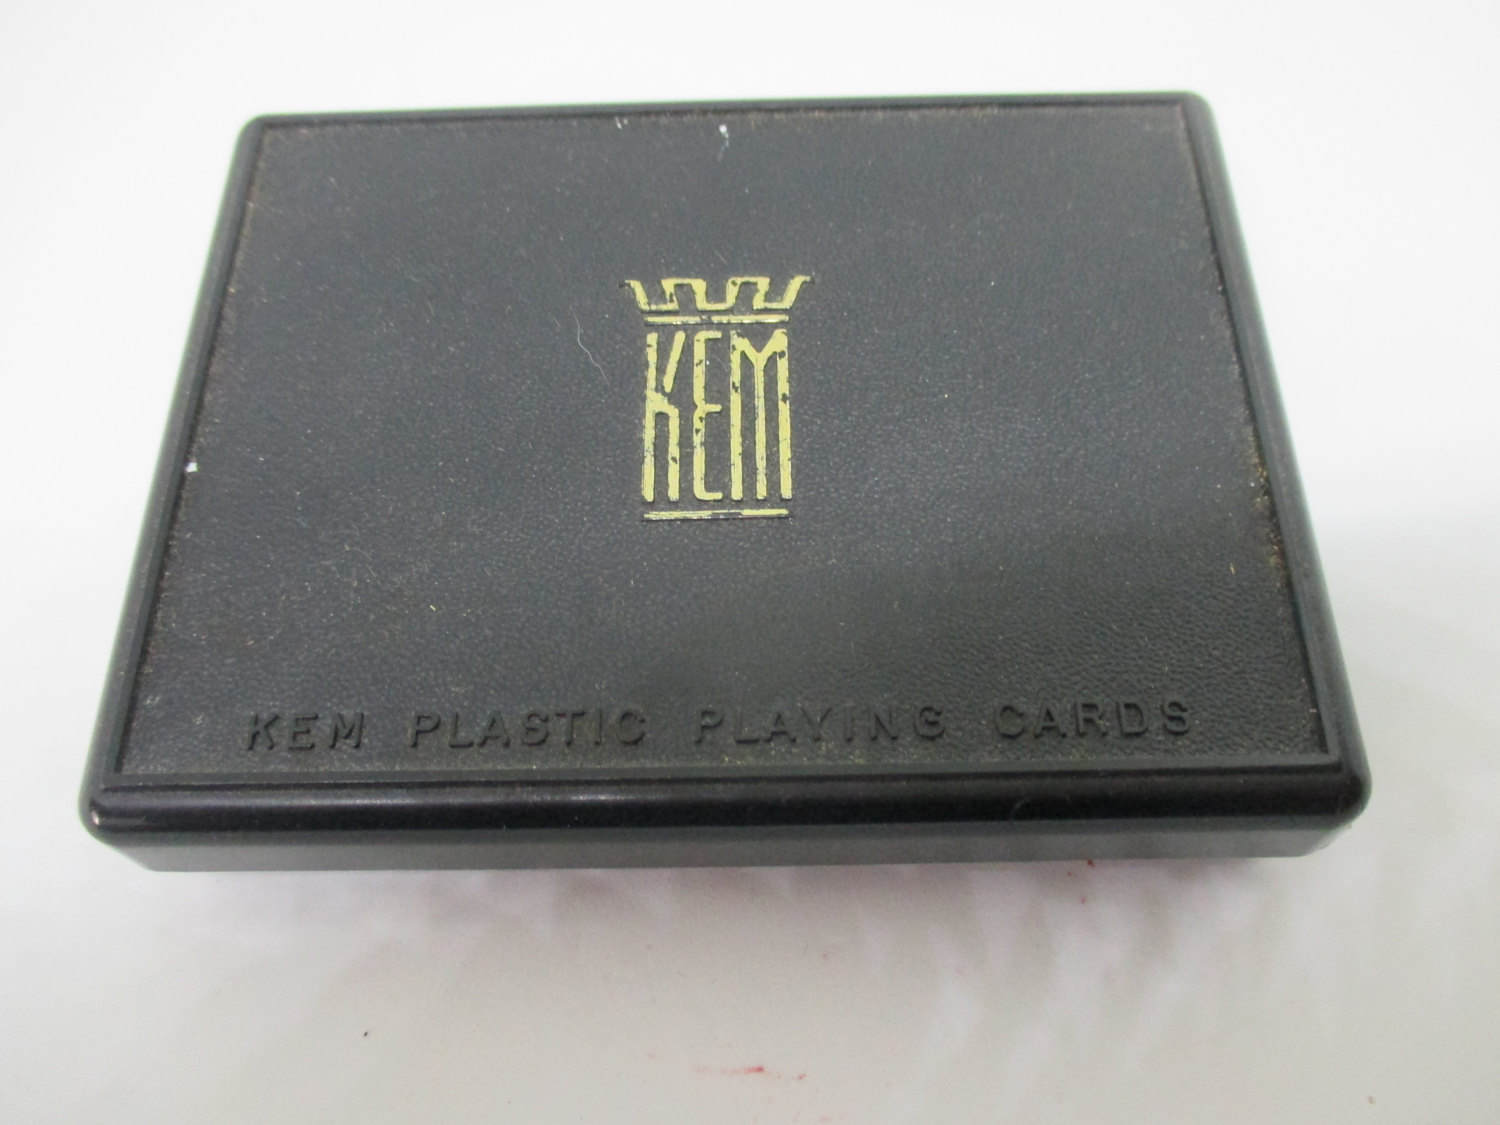 Vintage Playing Cards KEM Double Deck with Double jokers in each deck with service card in hard plastic KEM box decor pattern green &  brown